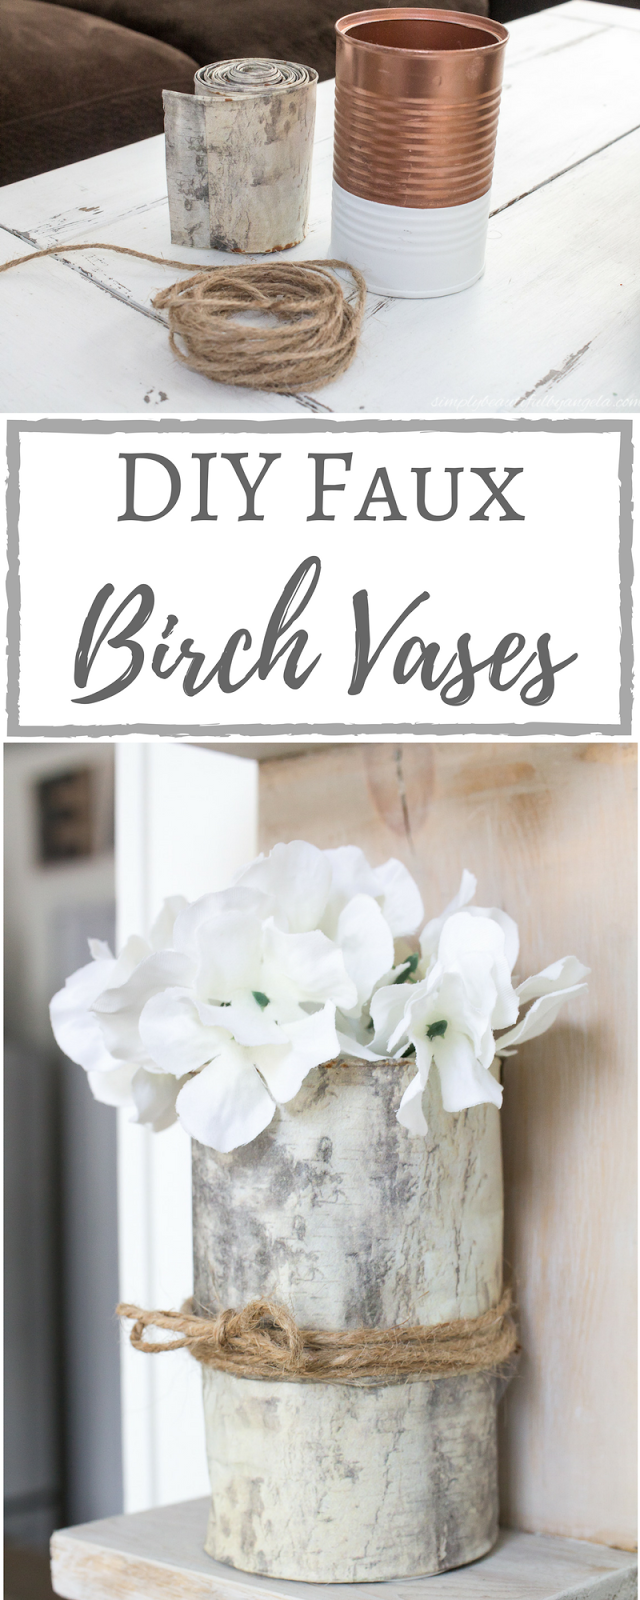 Simply Beautiful by Angela: DIY Birch Vases From Tin Cans